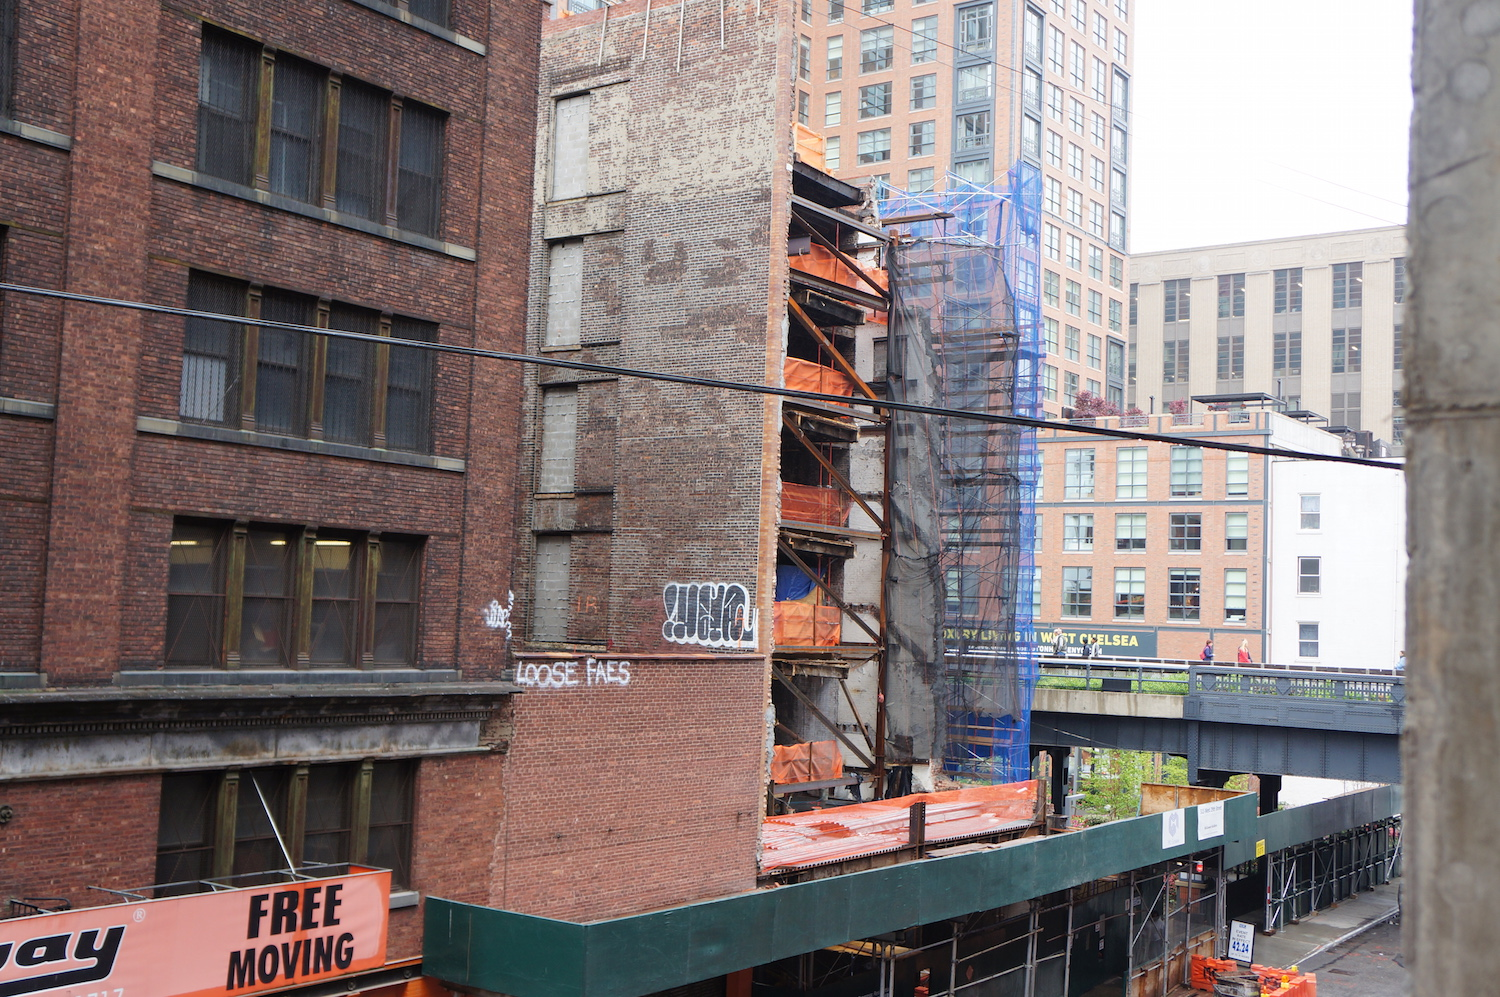 The current state of 515 West 29th Street, Chan's other condo building across the street